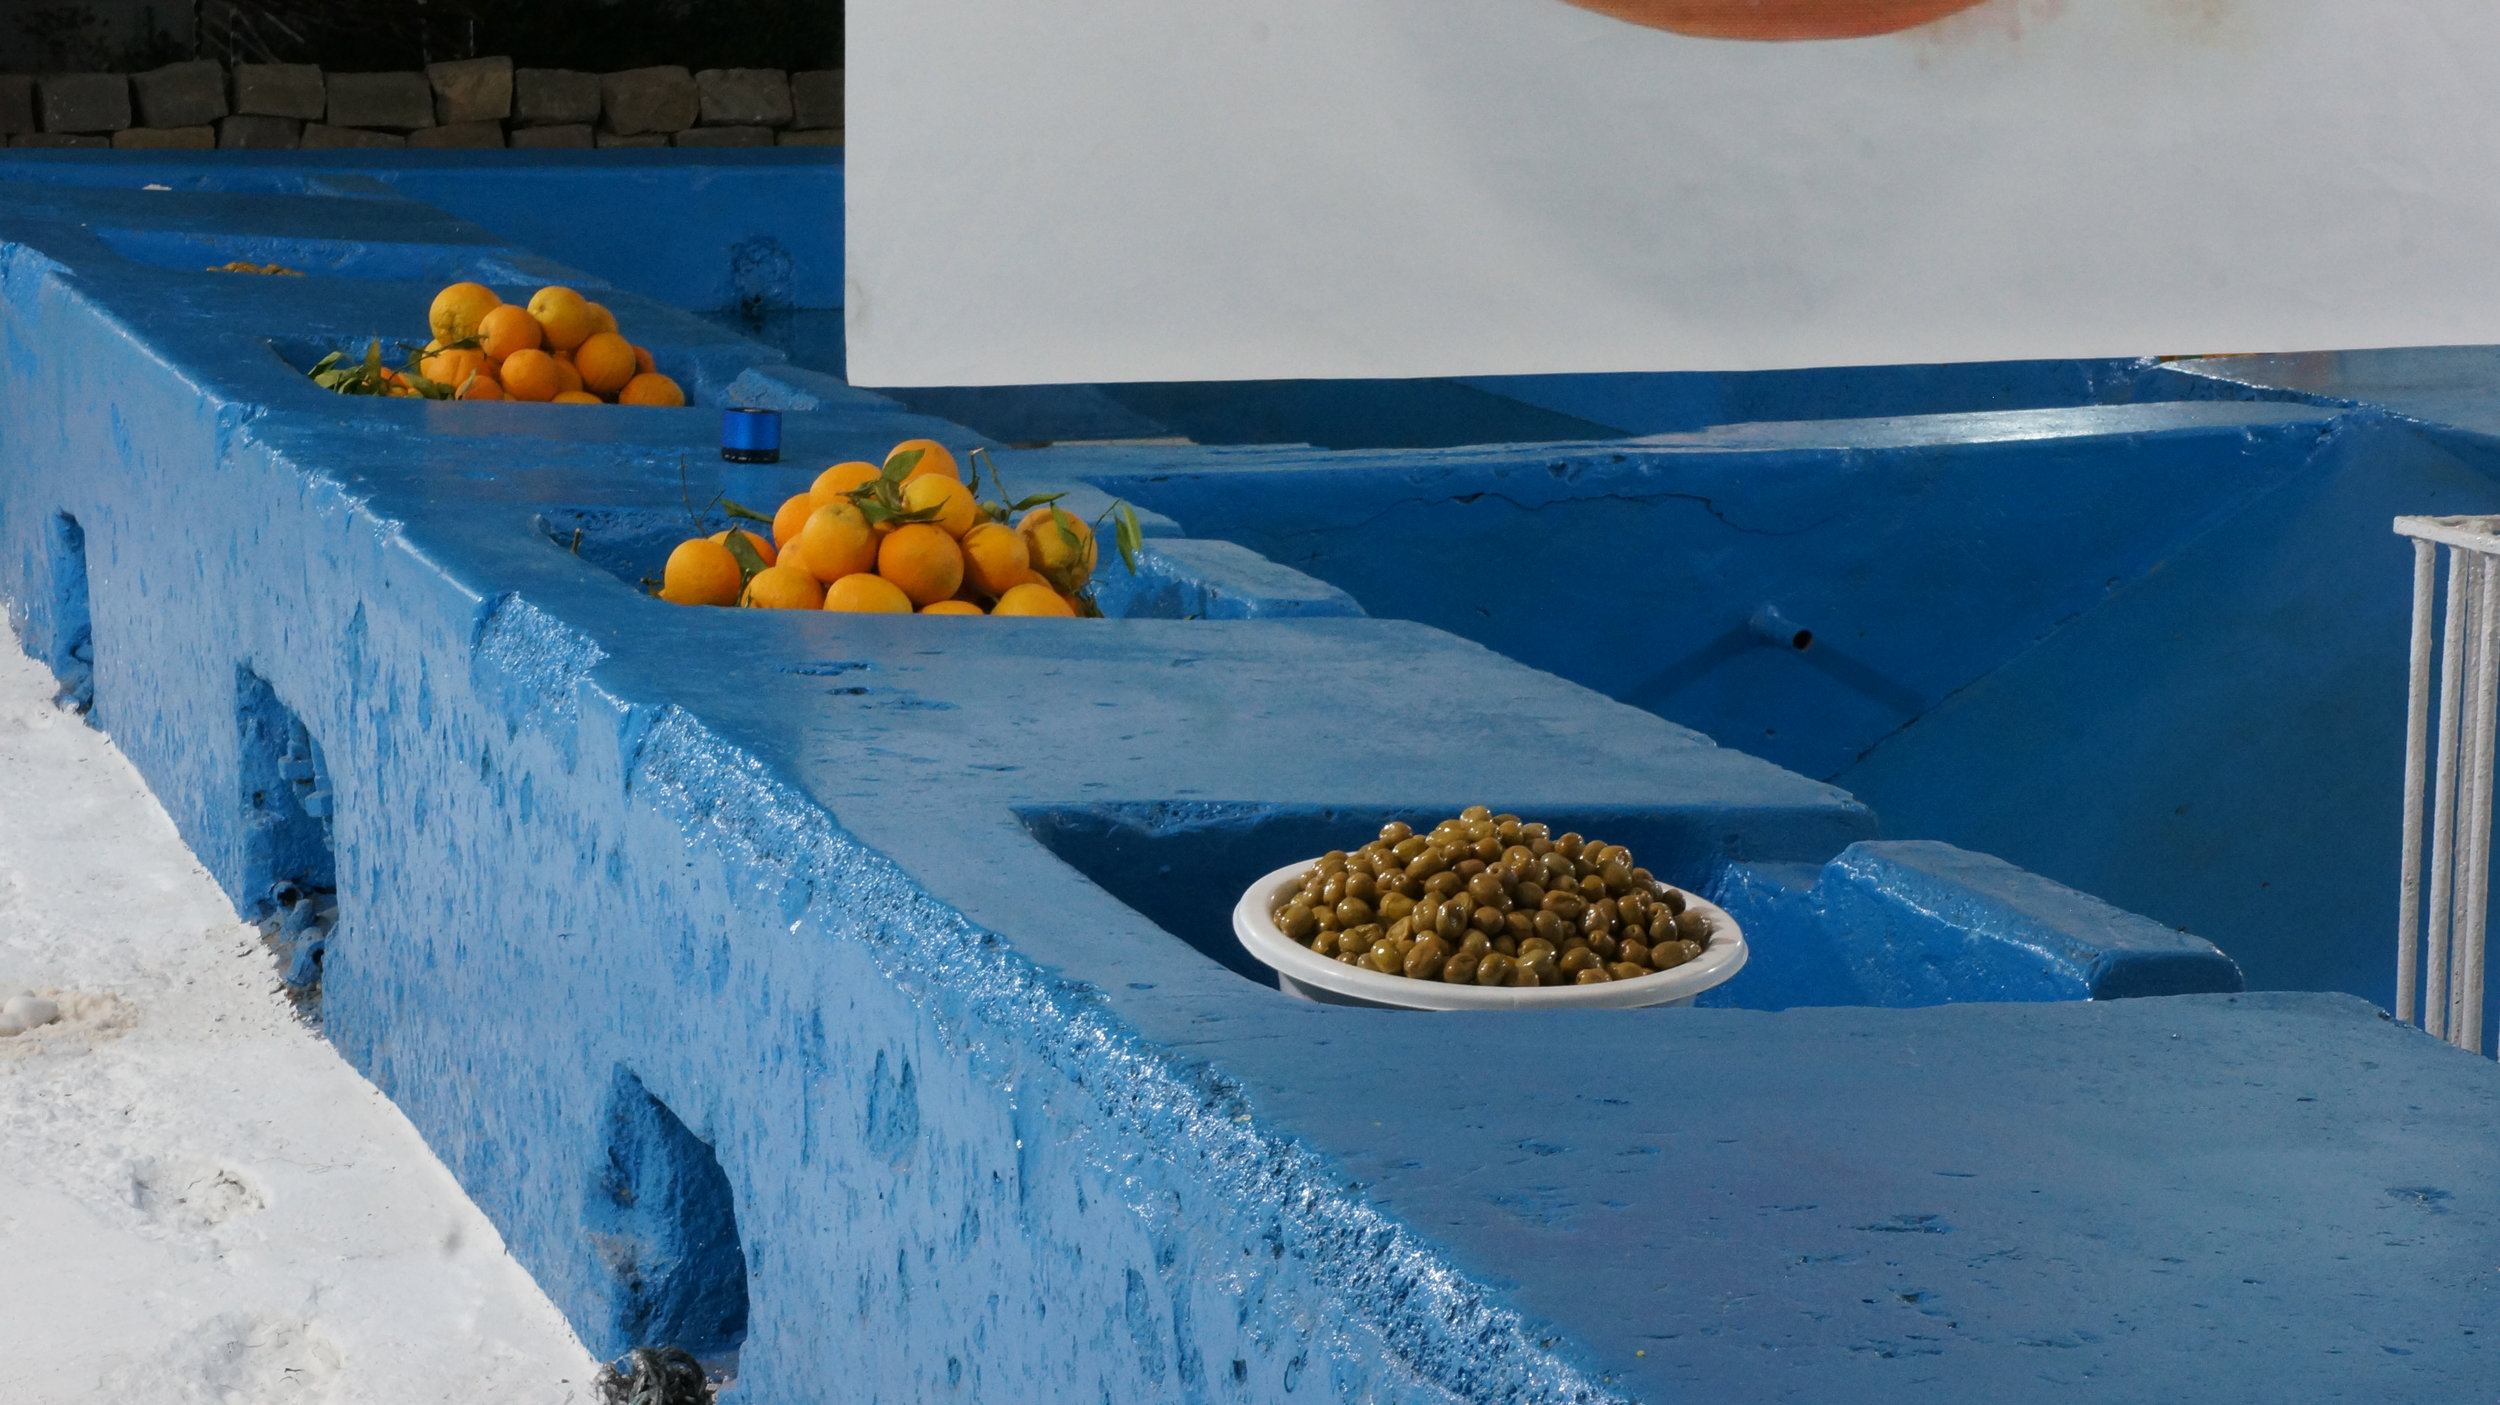 Olives and oranges from the market.